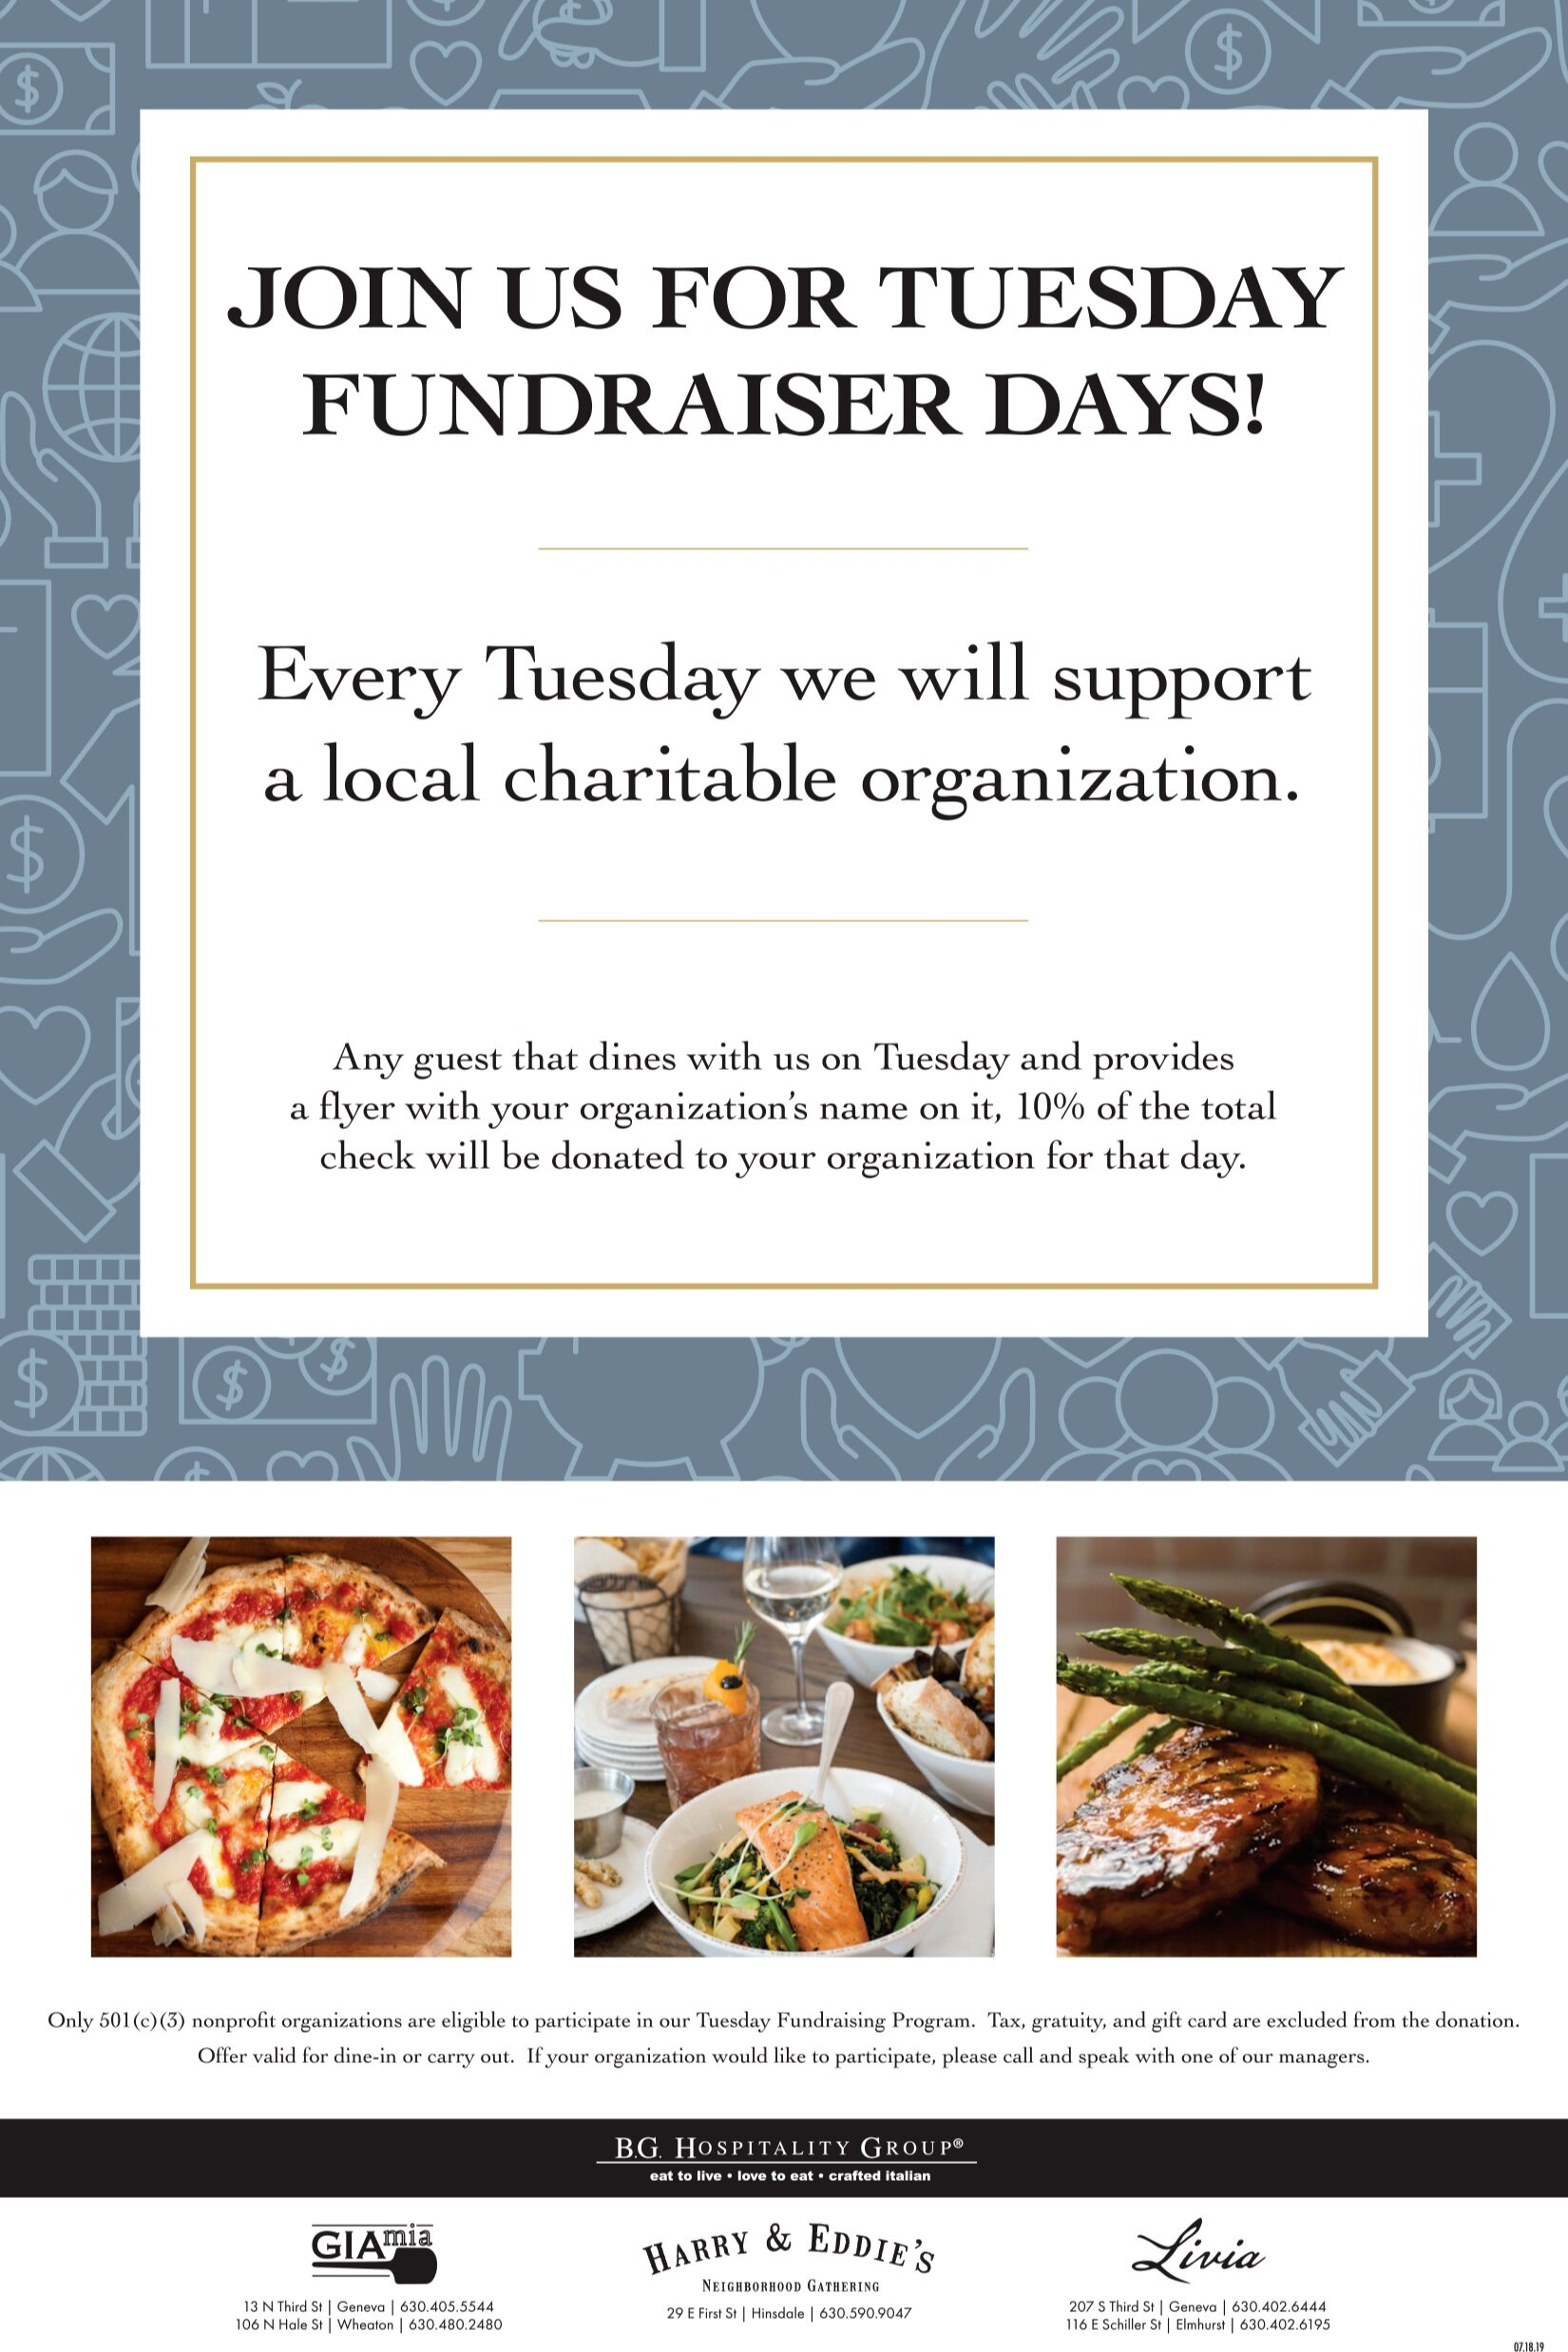 Tuesday Fundraiser Days*:  Every Tuesday we will support a local charitable organization. Any guest that dines with us on Tuesday and provides a flyer with your organizations name on it, 10% of the total check will be donated to your organization for that day!